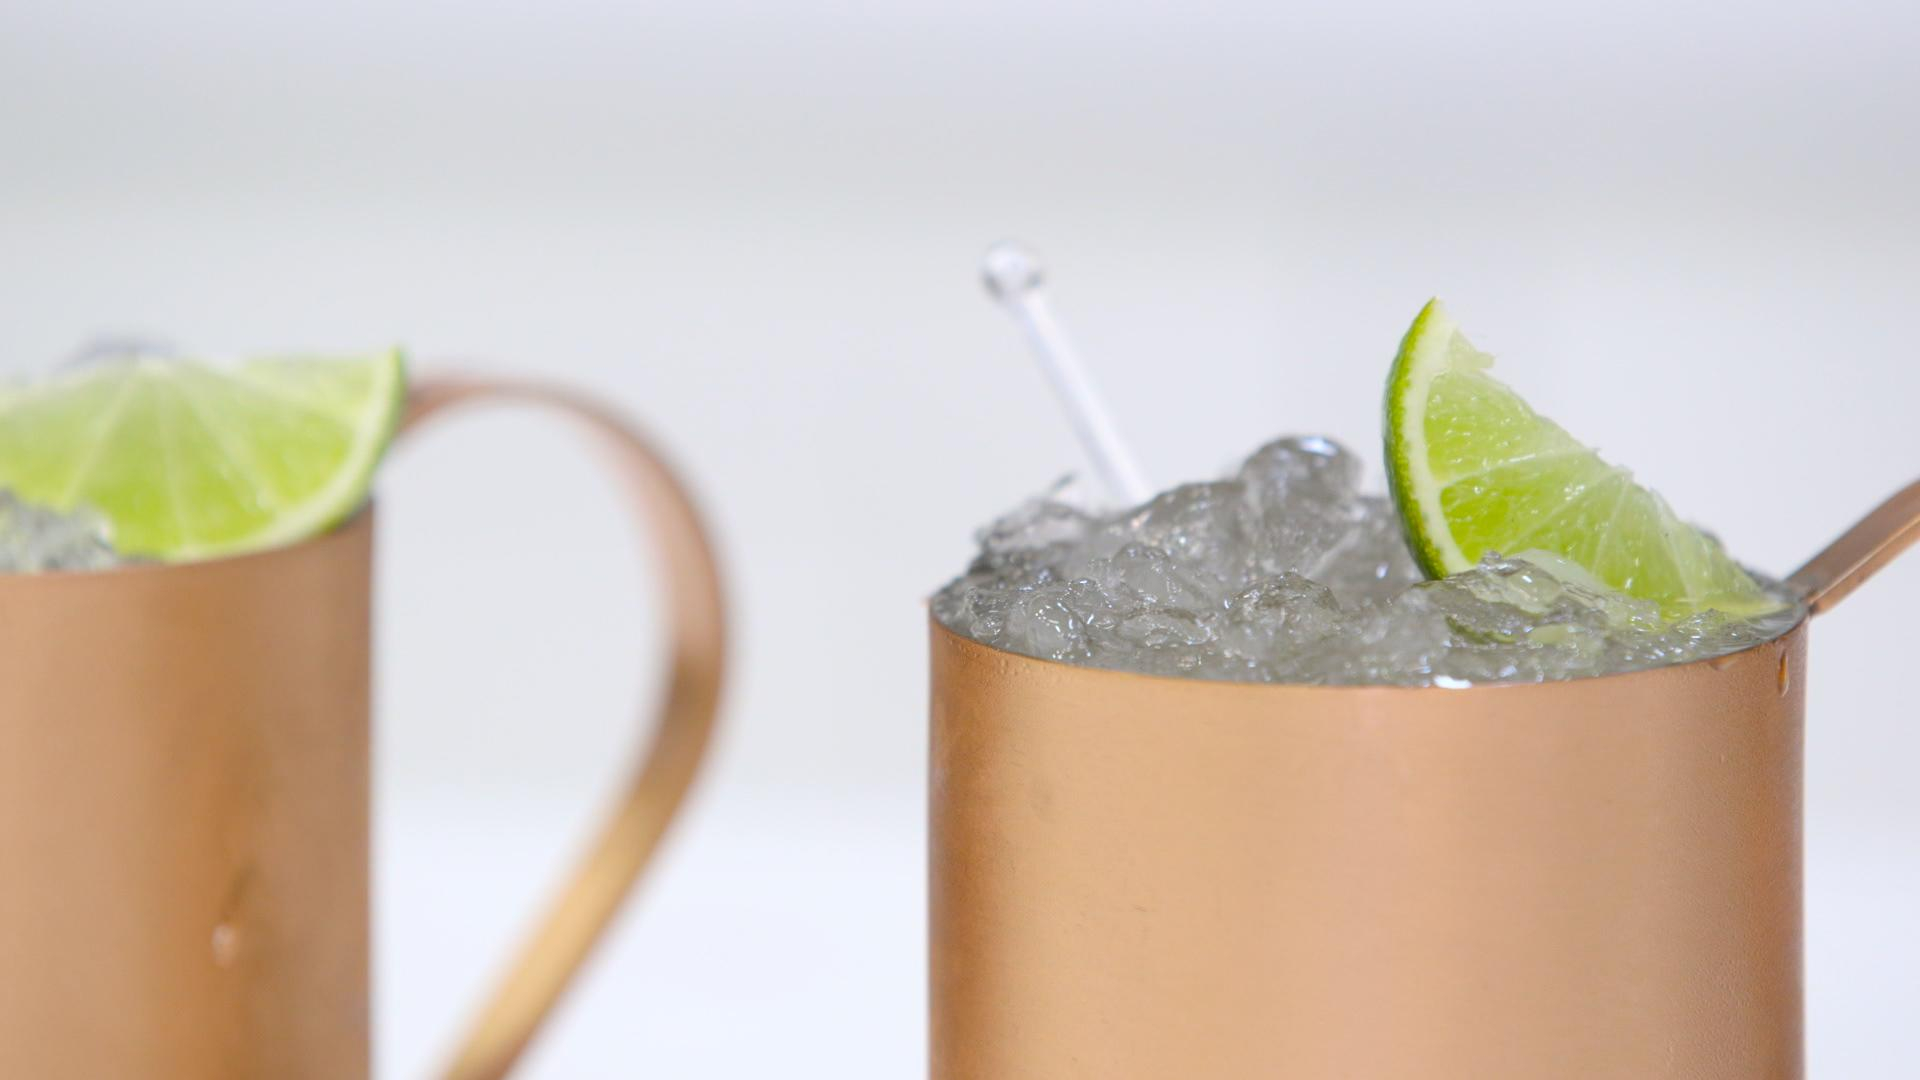 Related: How to Make a Moscow Mule